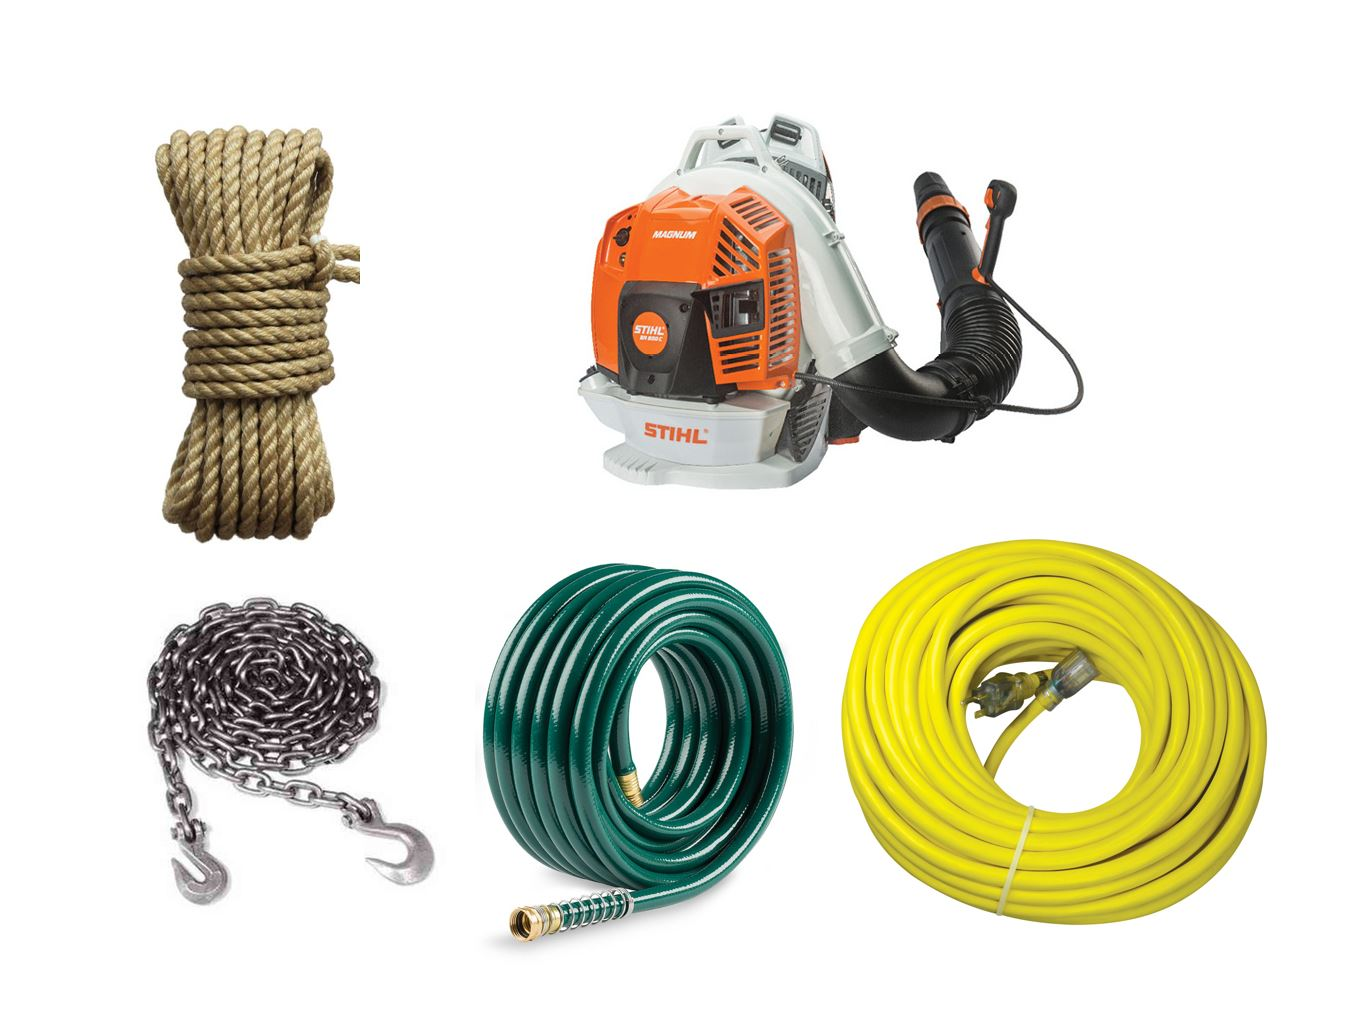 Carry backpack blowers, ropes, chains and more….